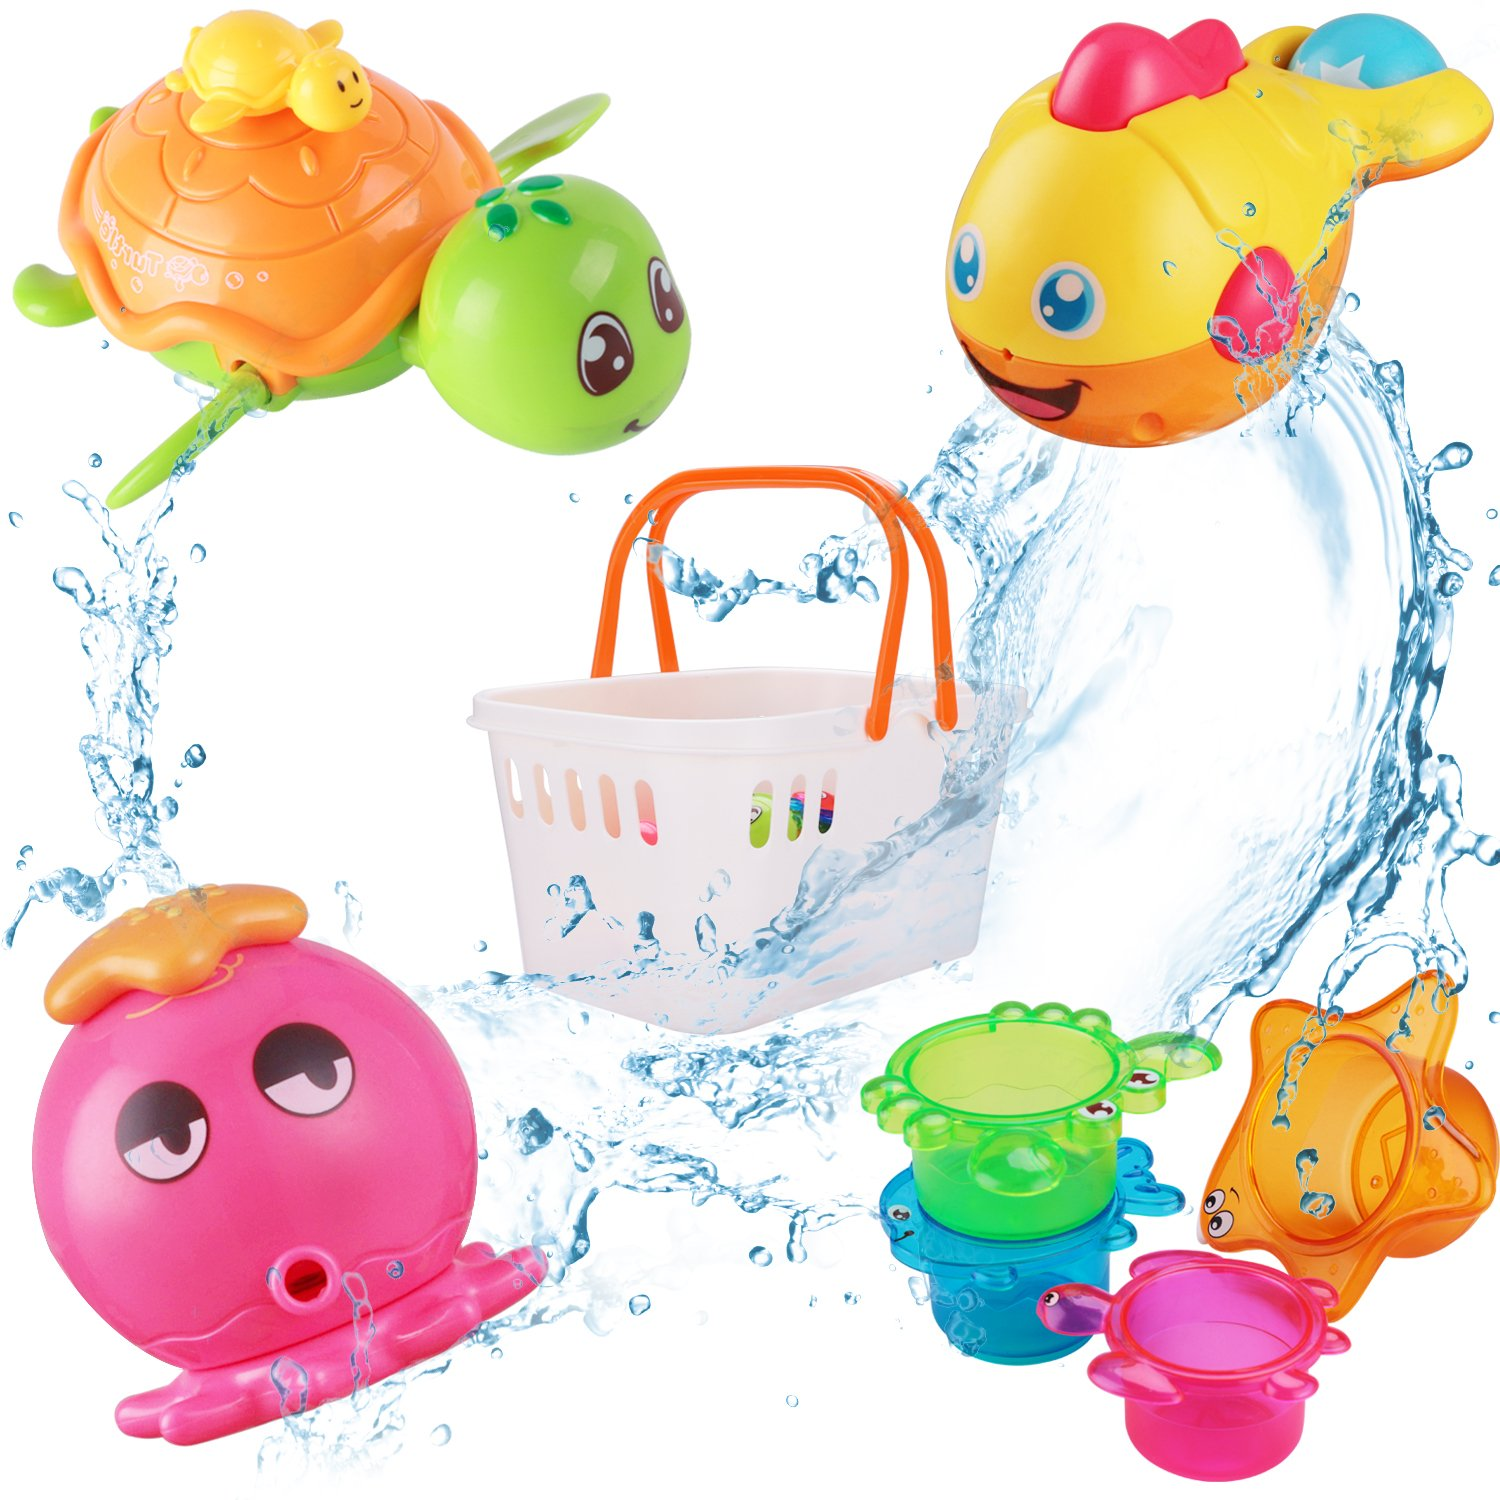 iPlay, iLearn Baby Bath Toys with Organizer, Octopus Water Squirters Bathtub Toys, Stacking Cups, Wind Up Swimming Shower Toys Gift for 6, 9, 12, 18 Months 1, 2, 3 Years Old Toddlers Girls Boys Kids